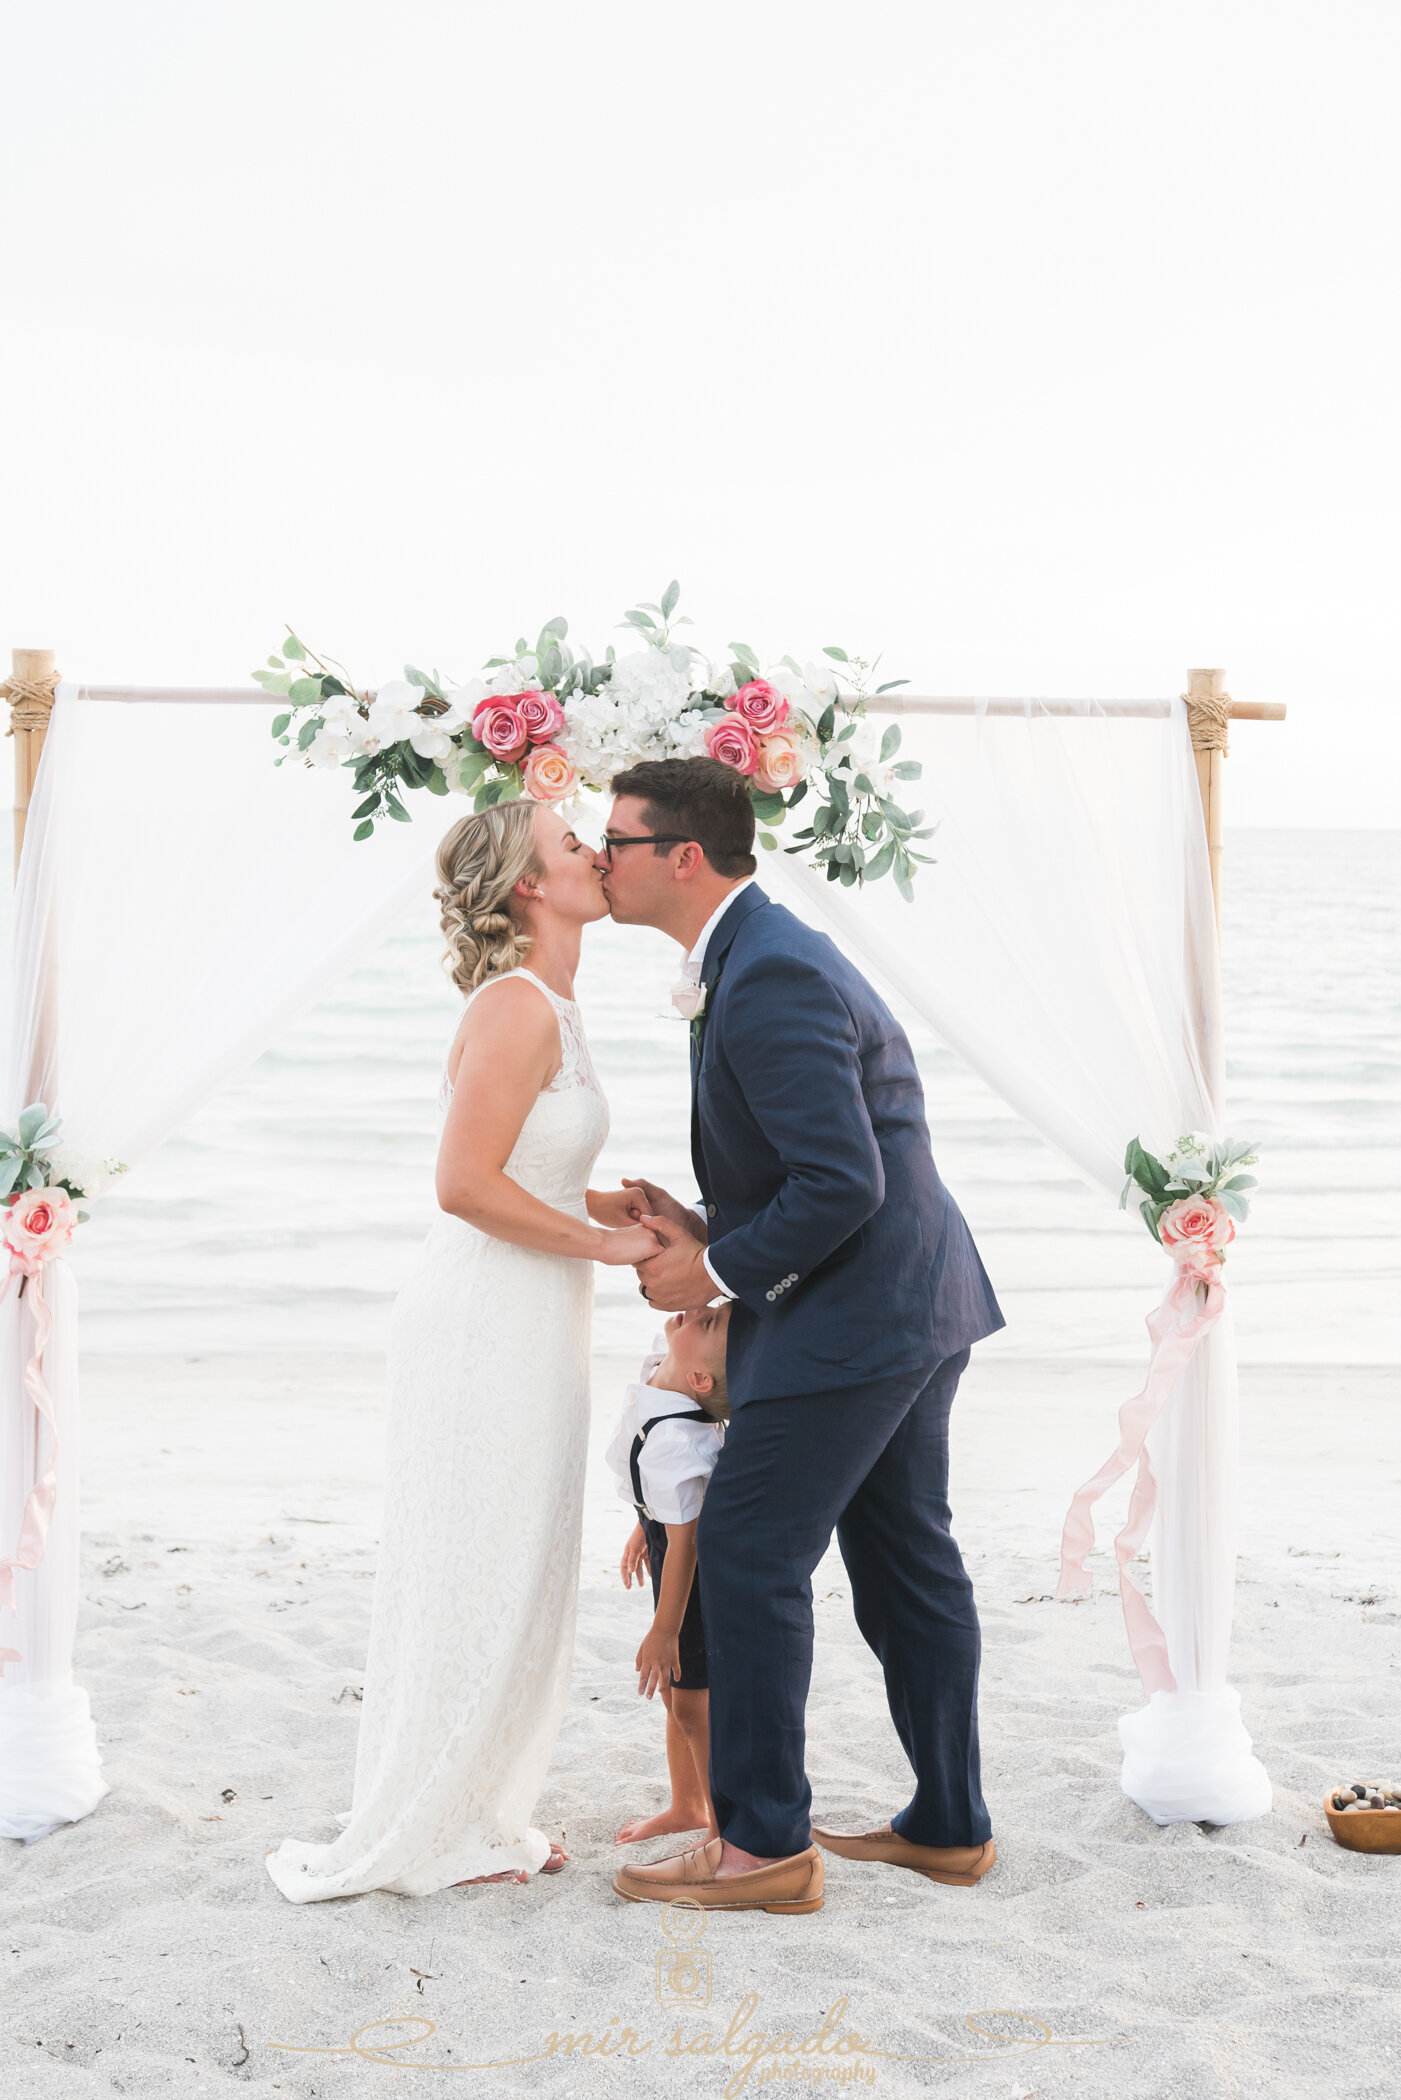 bride-and-groom-first-kiss, wedding-first-kiss, first-kiss-pictures, first-kiss-bride-and-groom, beach-wedding